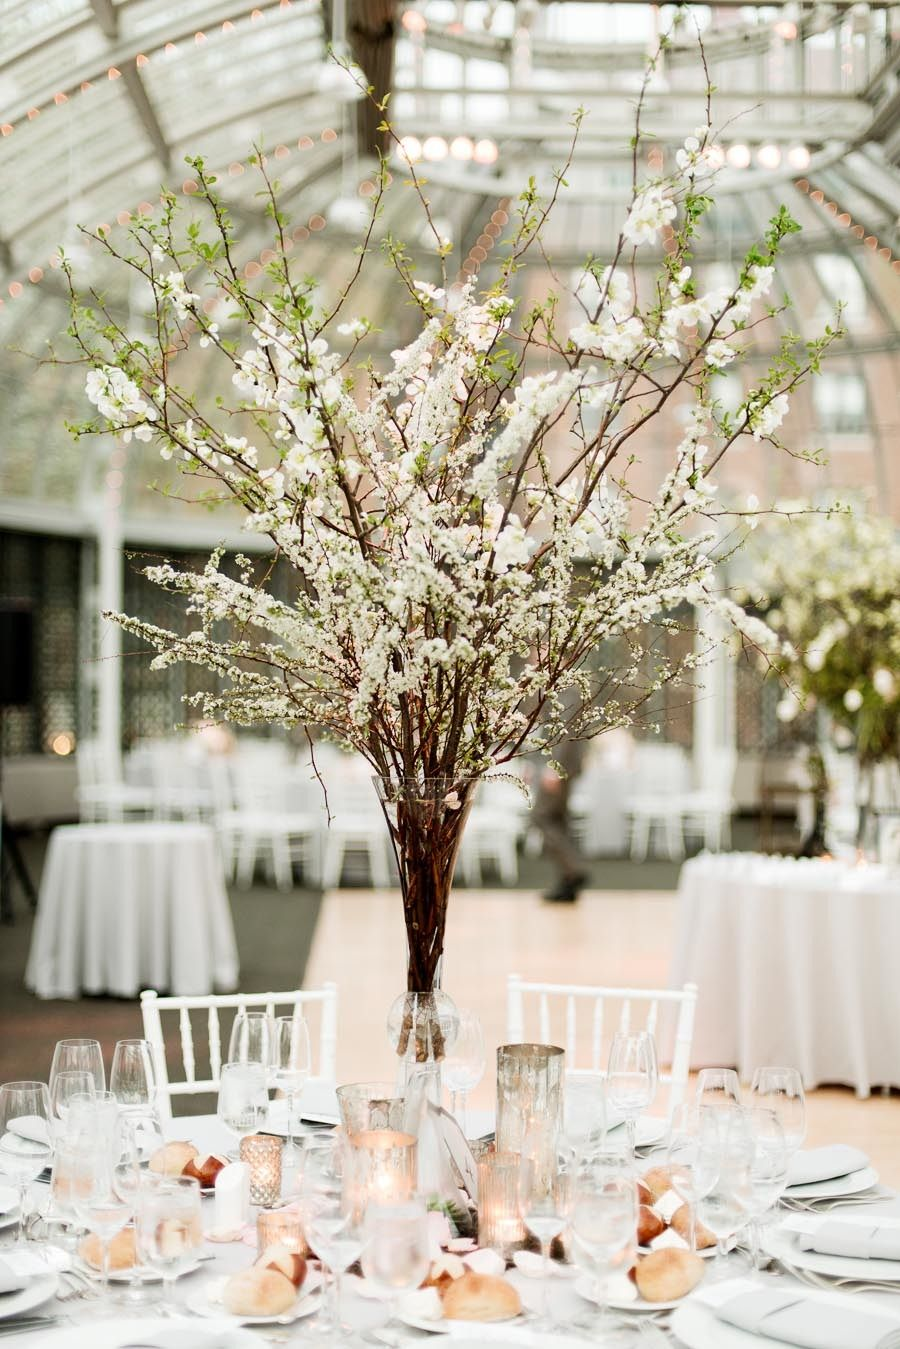 Simples e sofisticado! Amei <3 #branch, #cherry-blossoms, #centerpiece  Photography: Photo Pink - photopink.com  Read More: http://www.stylemepretty.com/2014/07/10/botanical-garden-wedding-covered-in-cherry-blossoms/